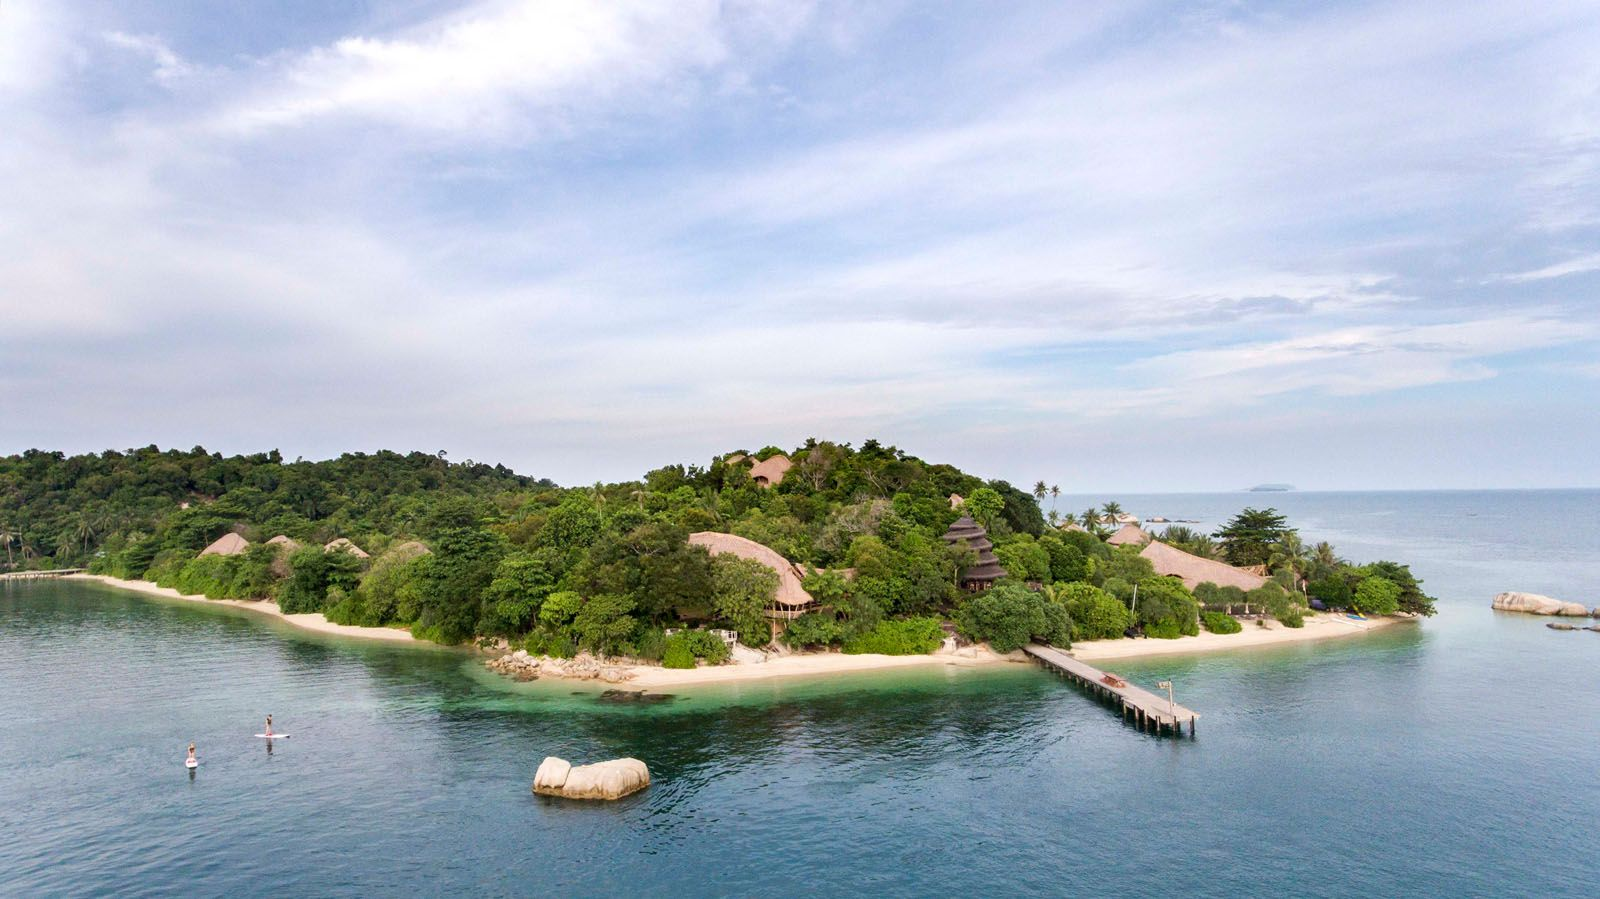 How This Private Island Near Singapore Is A Champion For Sustainability